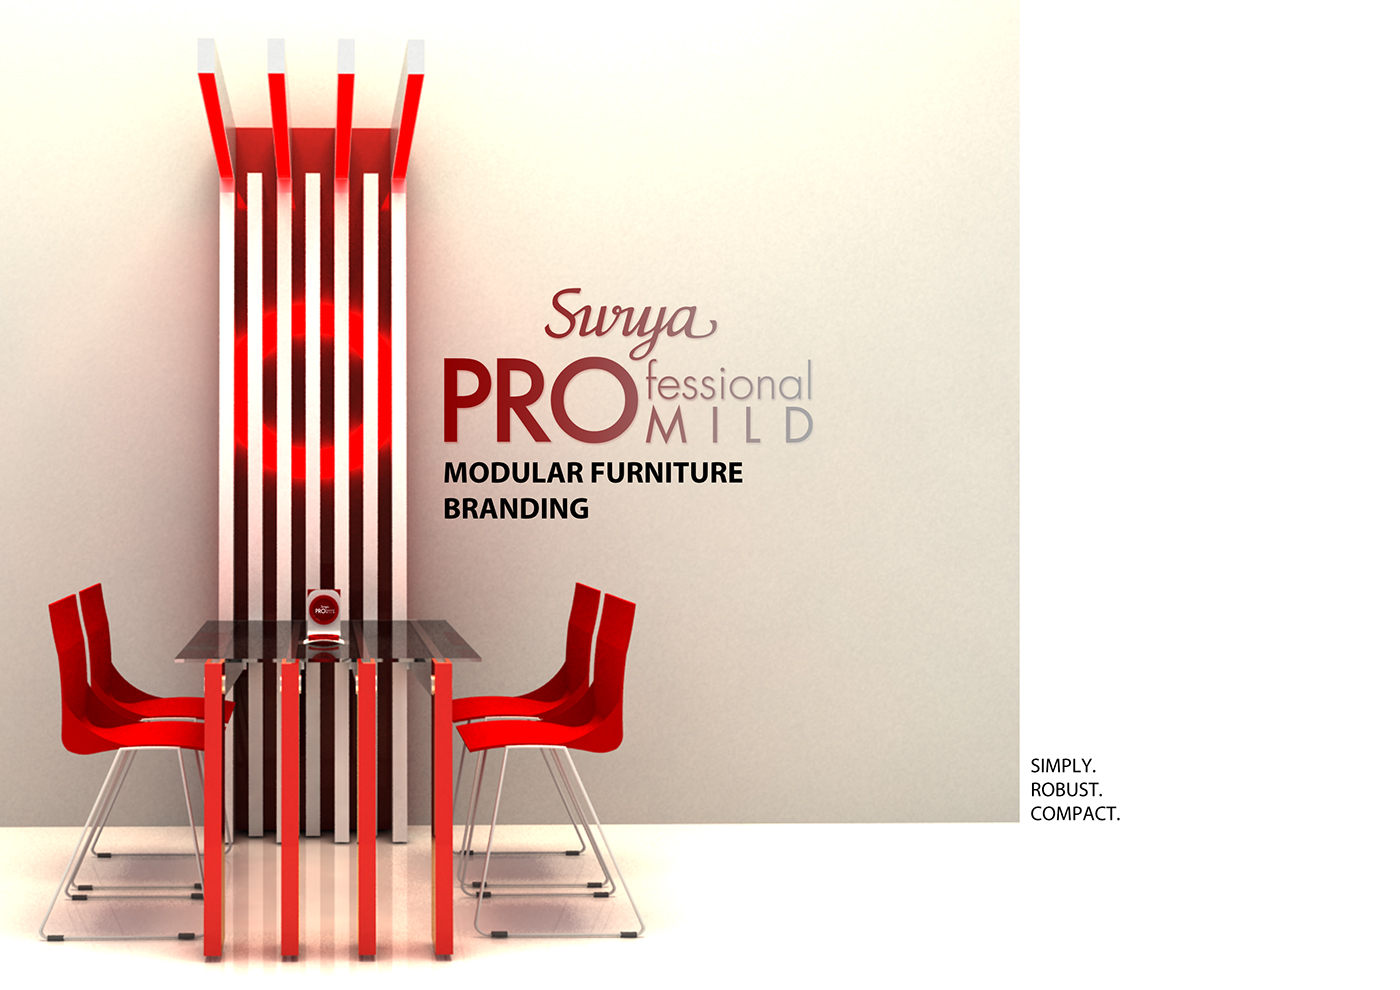 Foldable Wall Furniture On Behance Surya Pro Mild